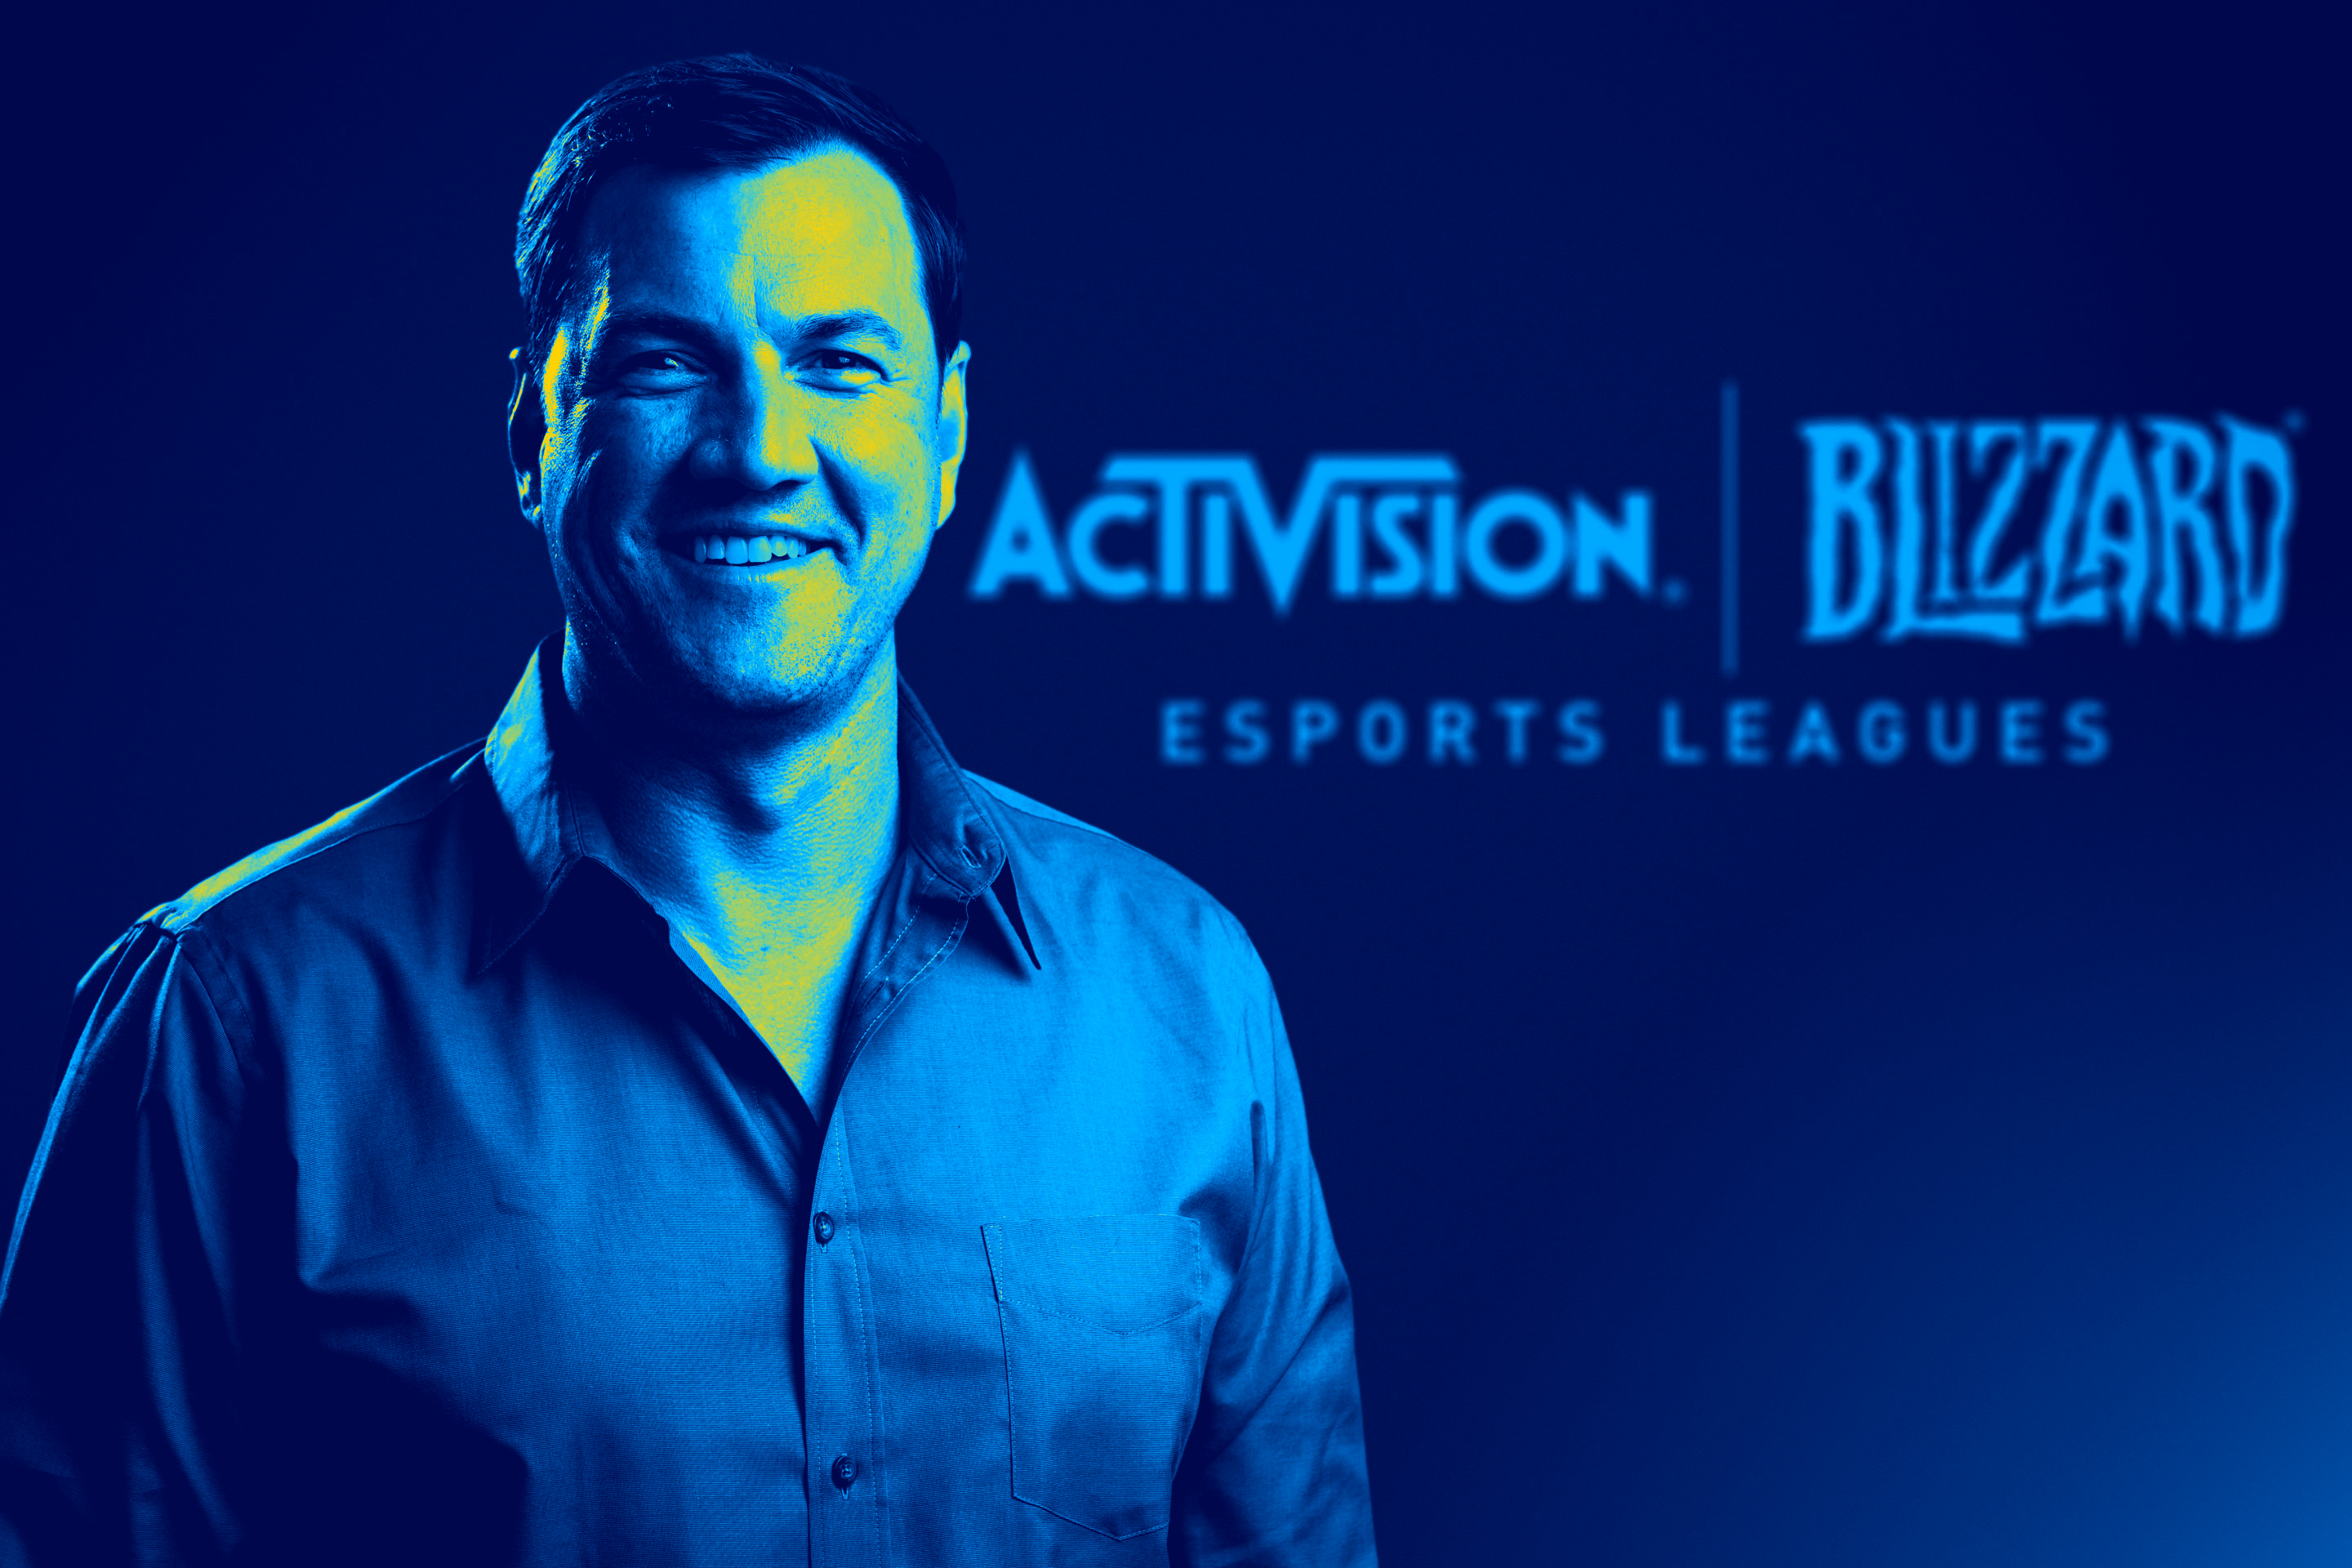 Watch live at 12 p.m. Activision Blizzard Esports CRO on how brands can be part of the future of gaming